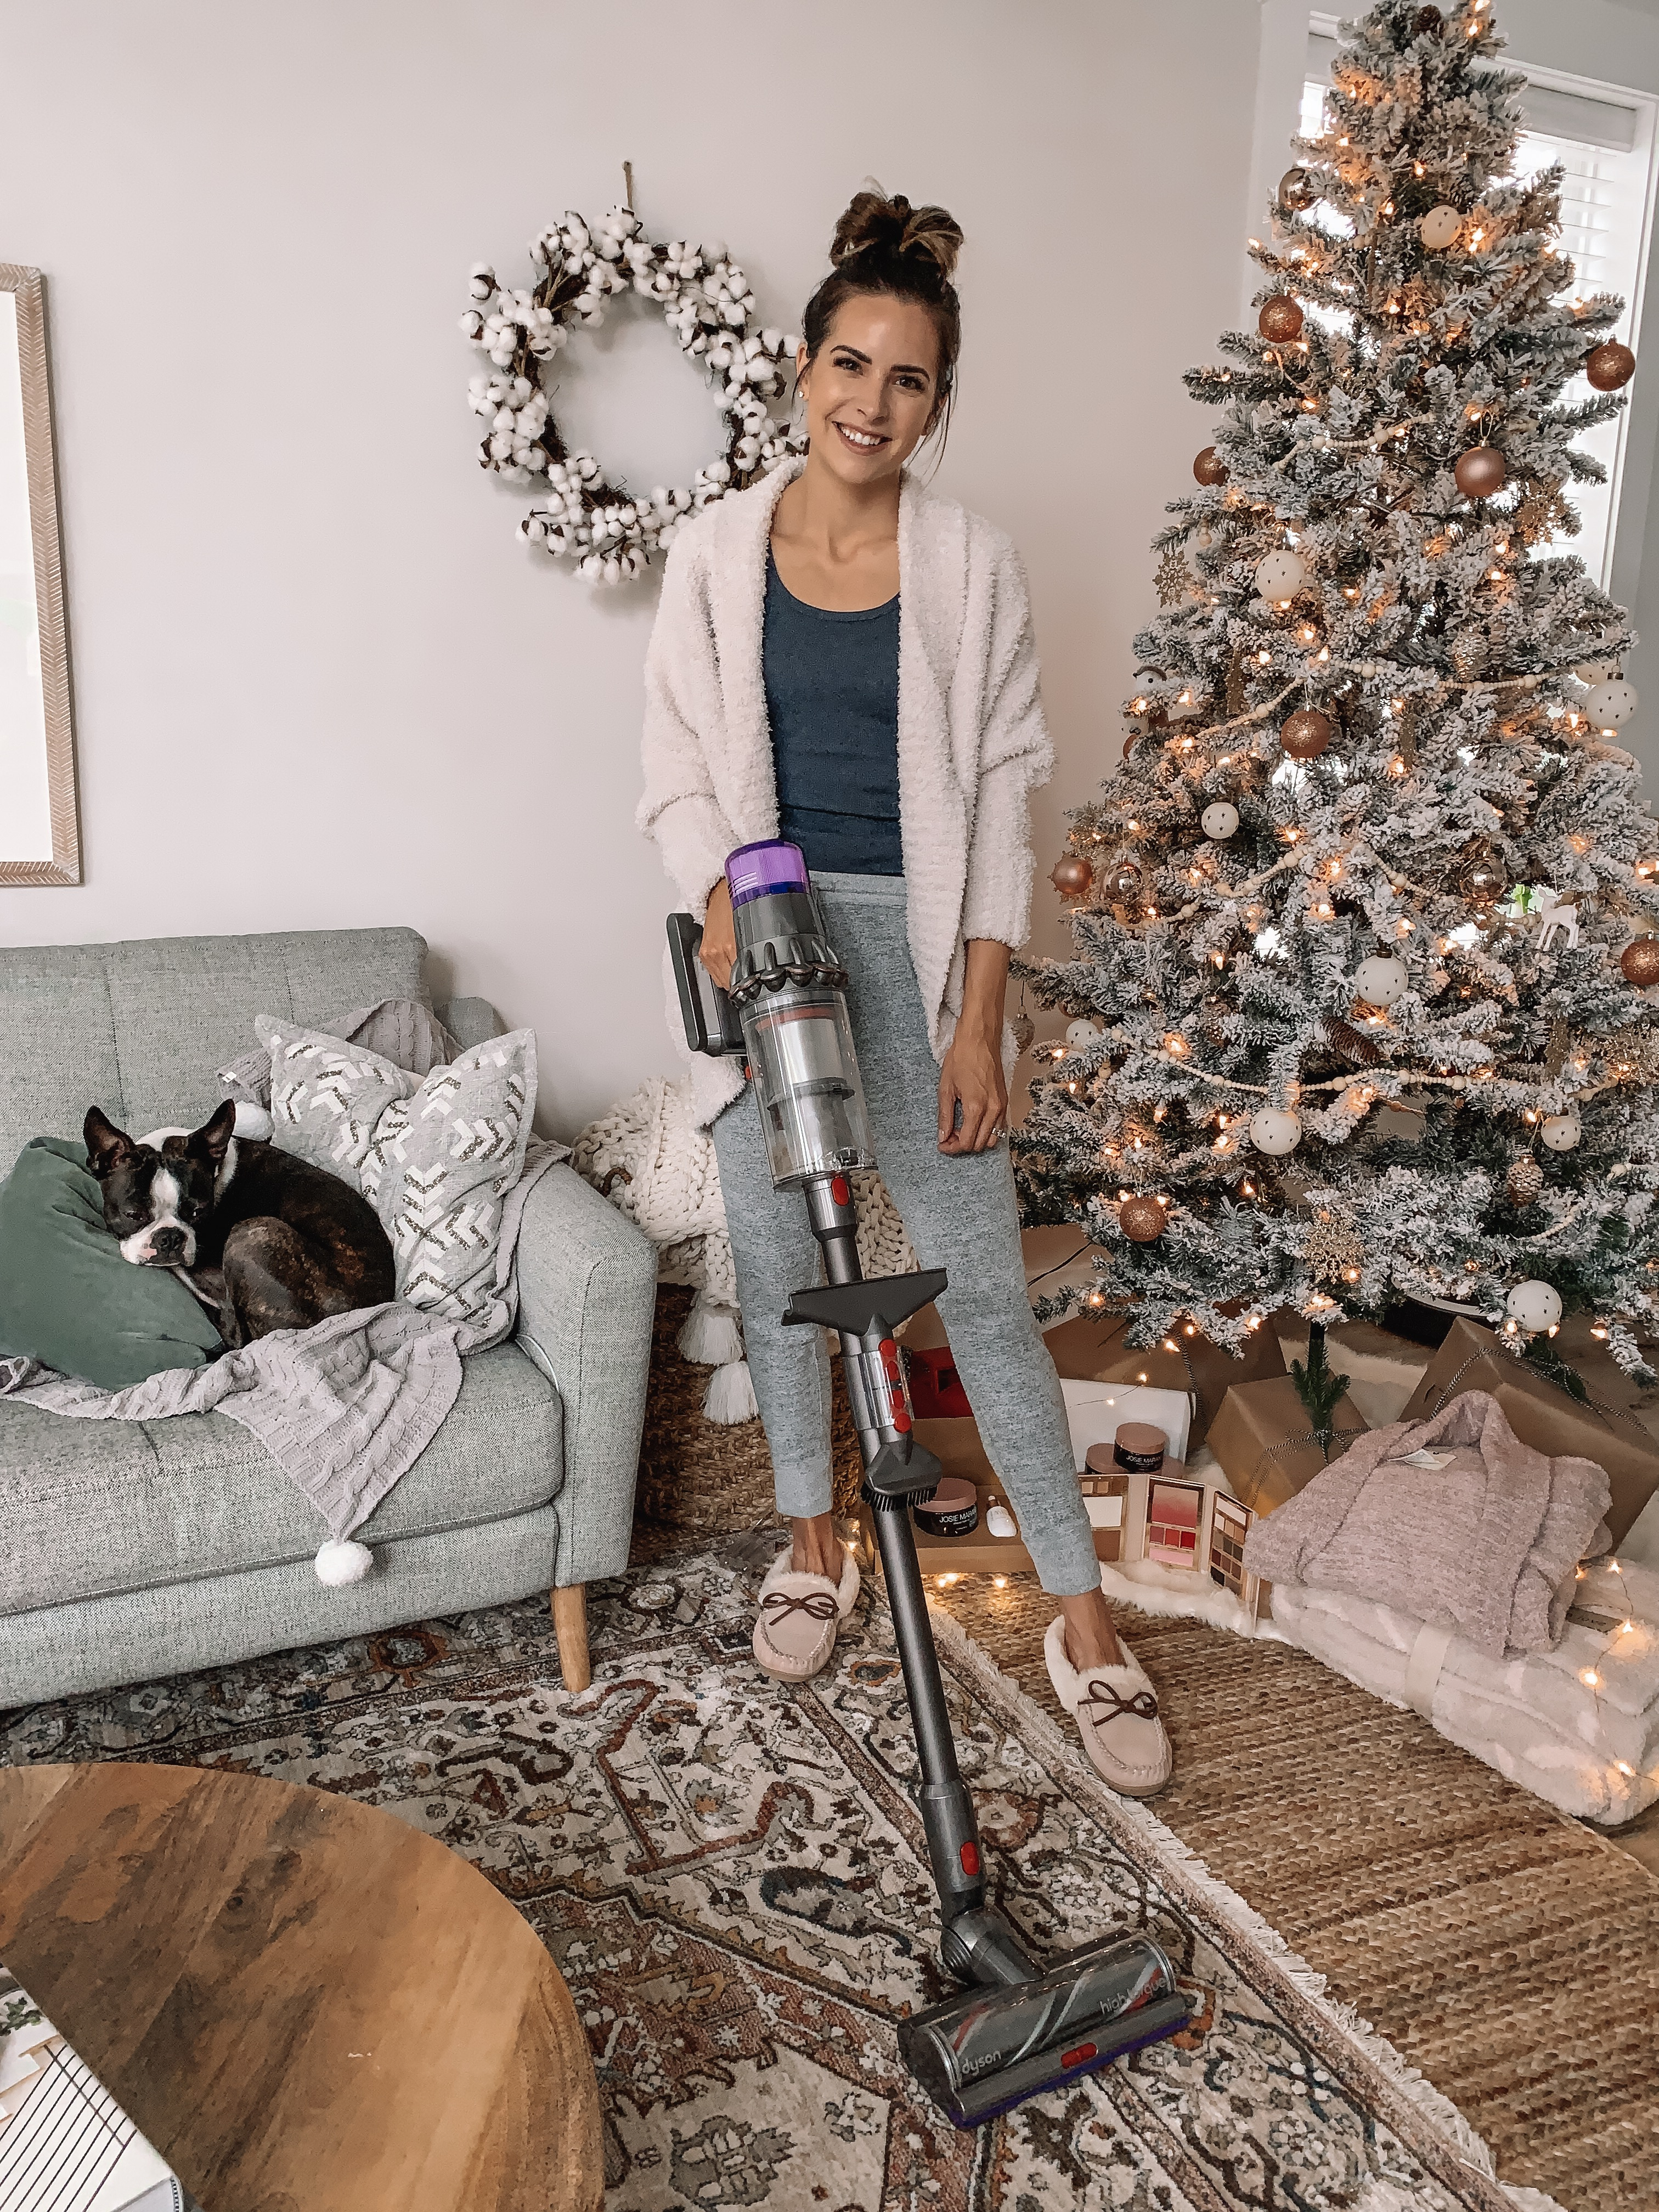 Dyson V11 Torque Drive Complete Cord-Free Vacuum sale, best of QVC gift guide, gifts for home